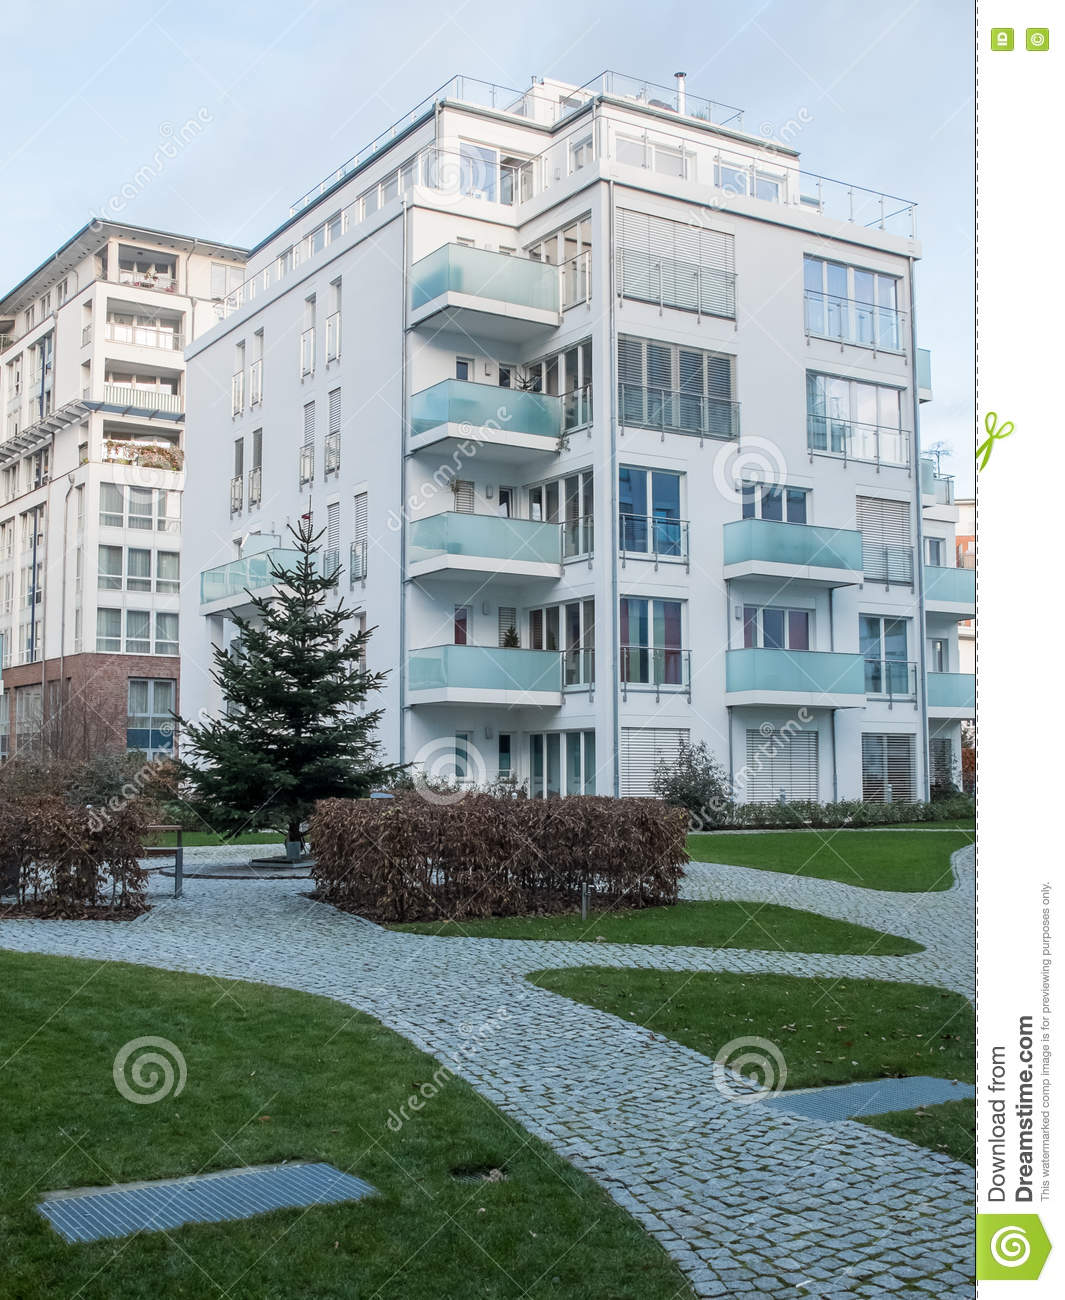 Cobblestone Park Apartments: Low Rise Apartment Building Near Park With Paths Stock